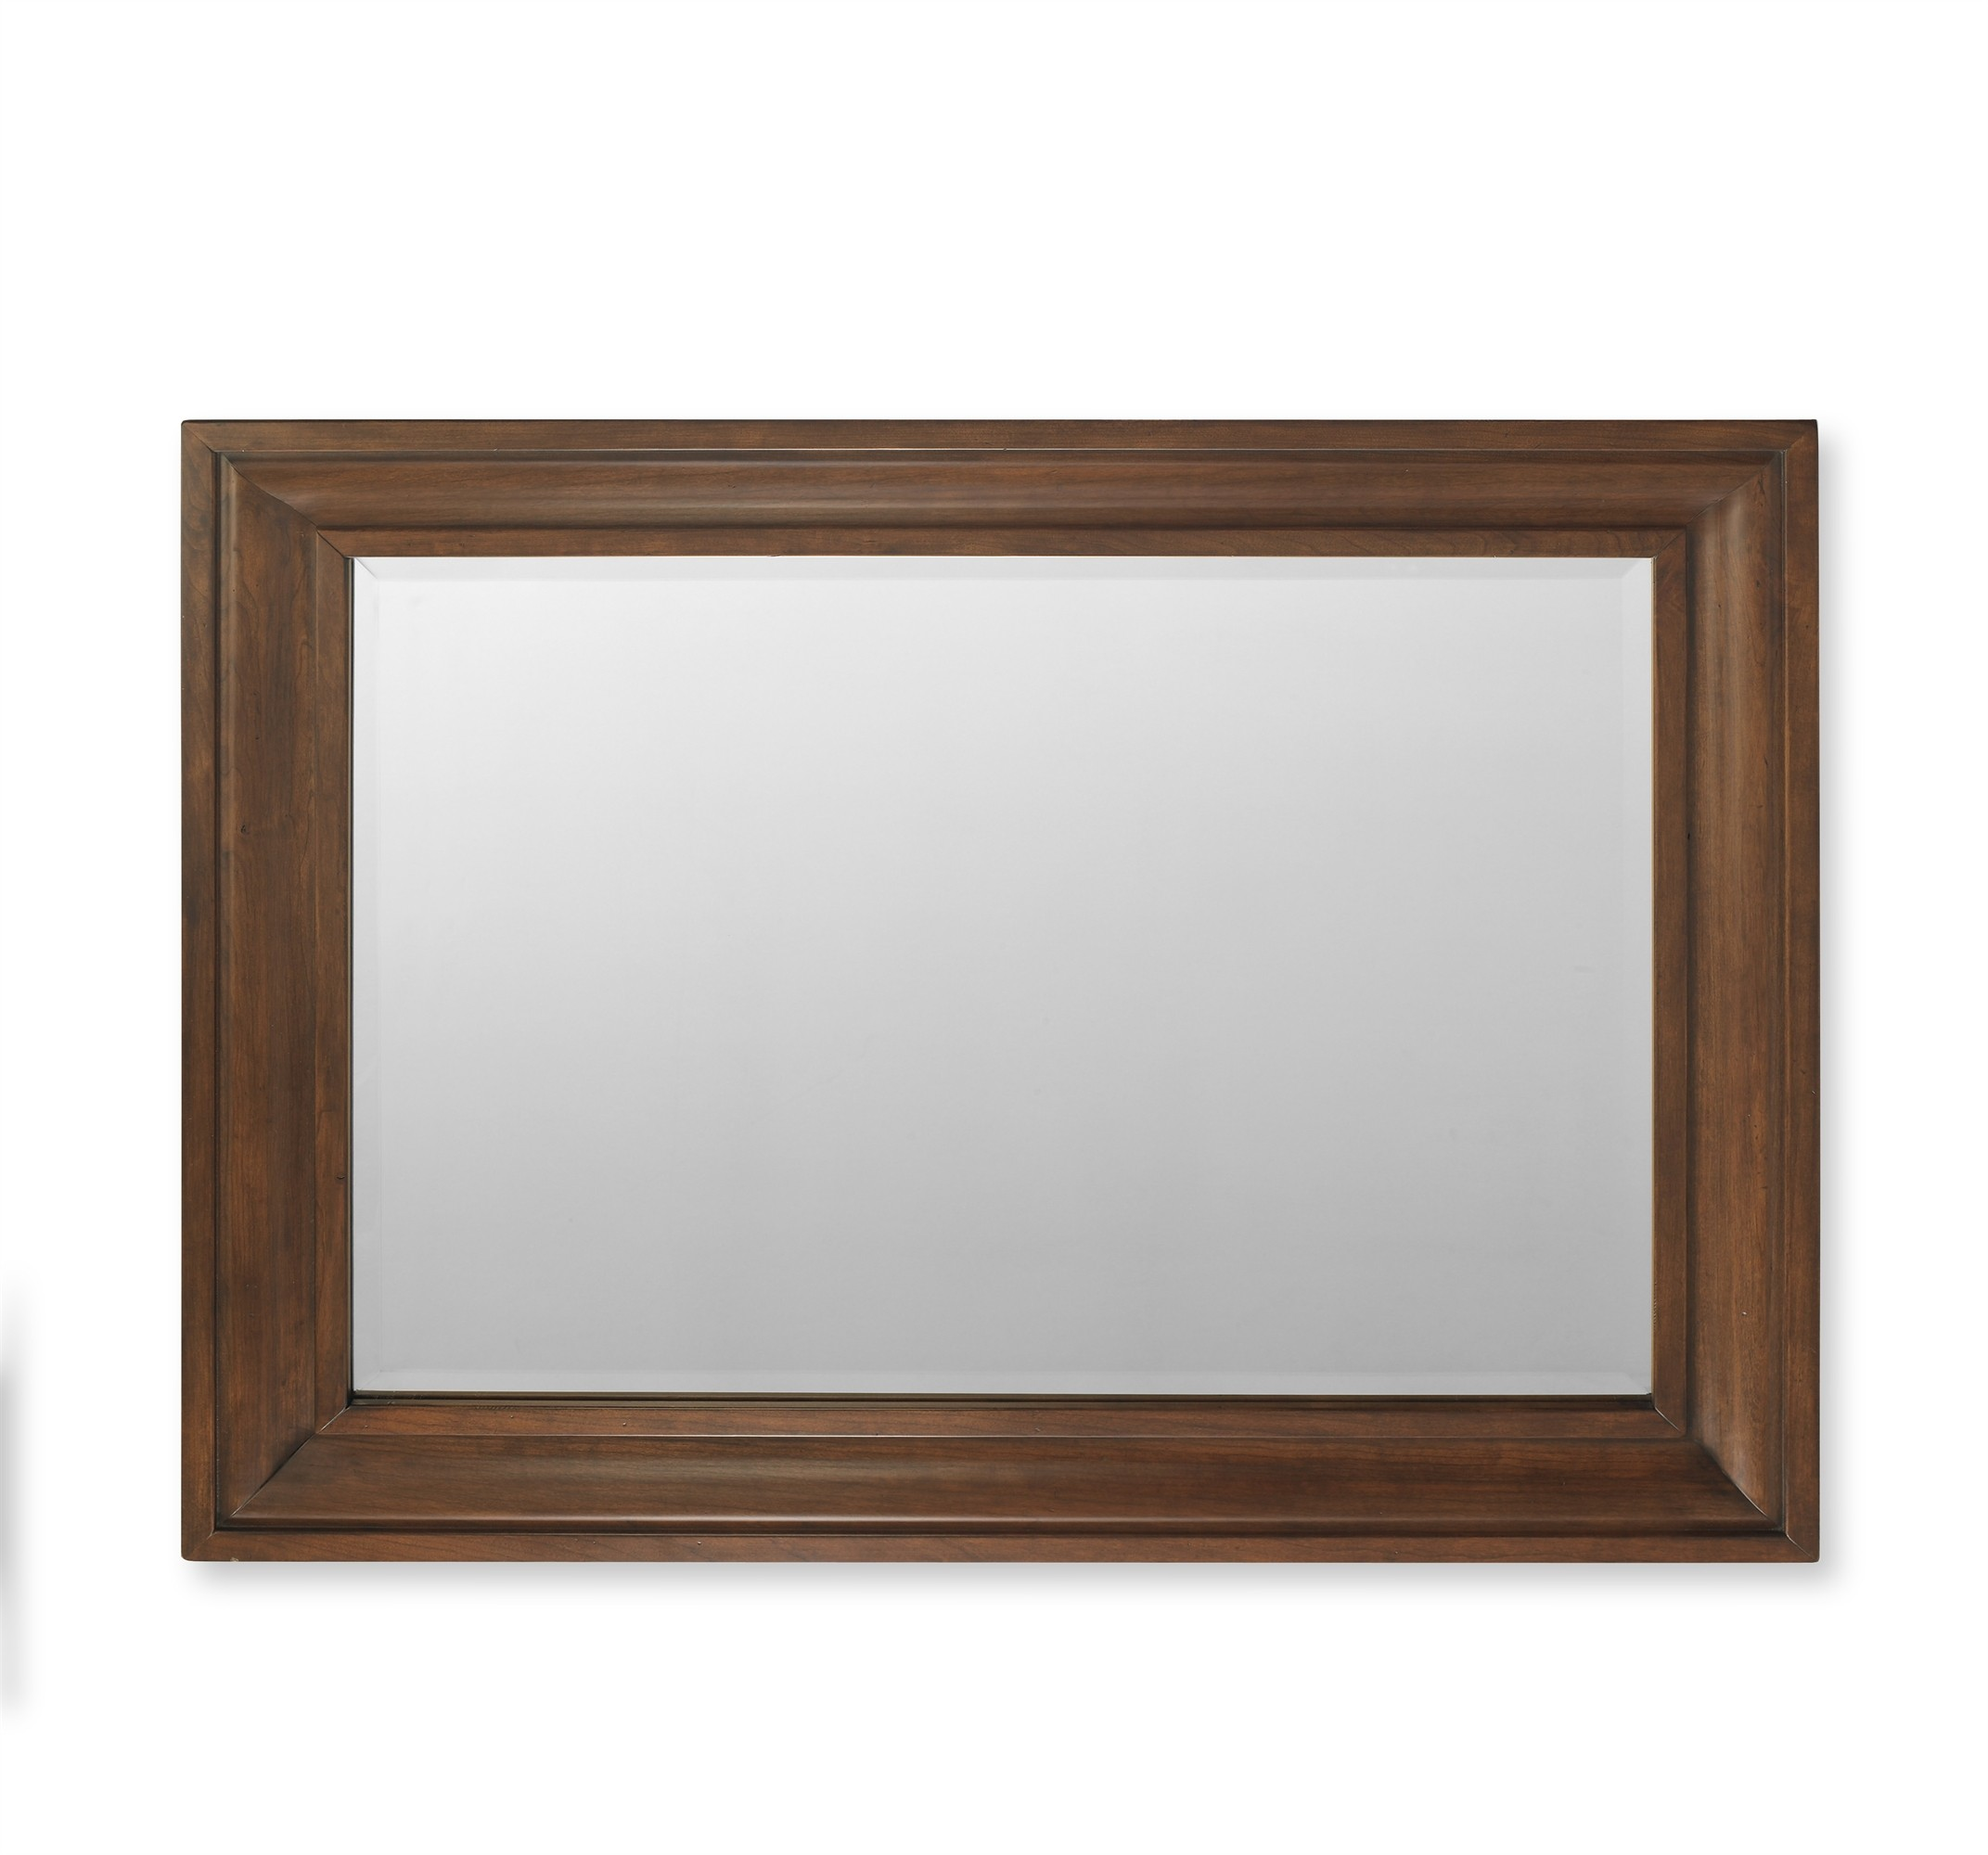 Art Frame Mirror